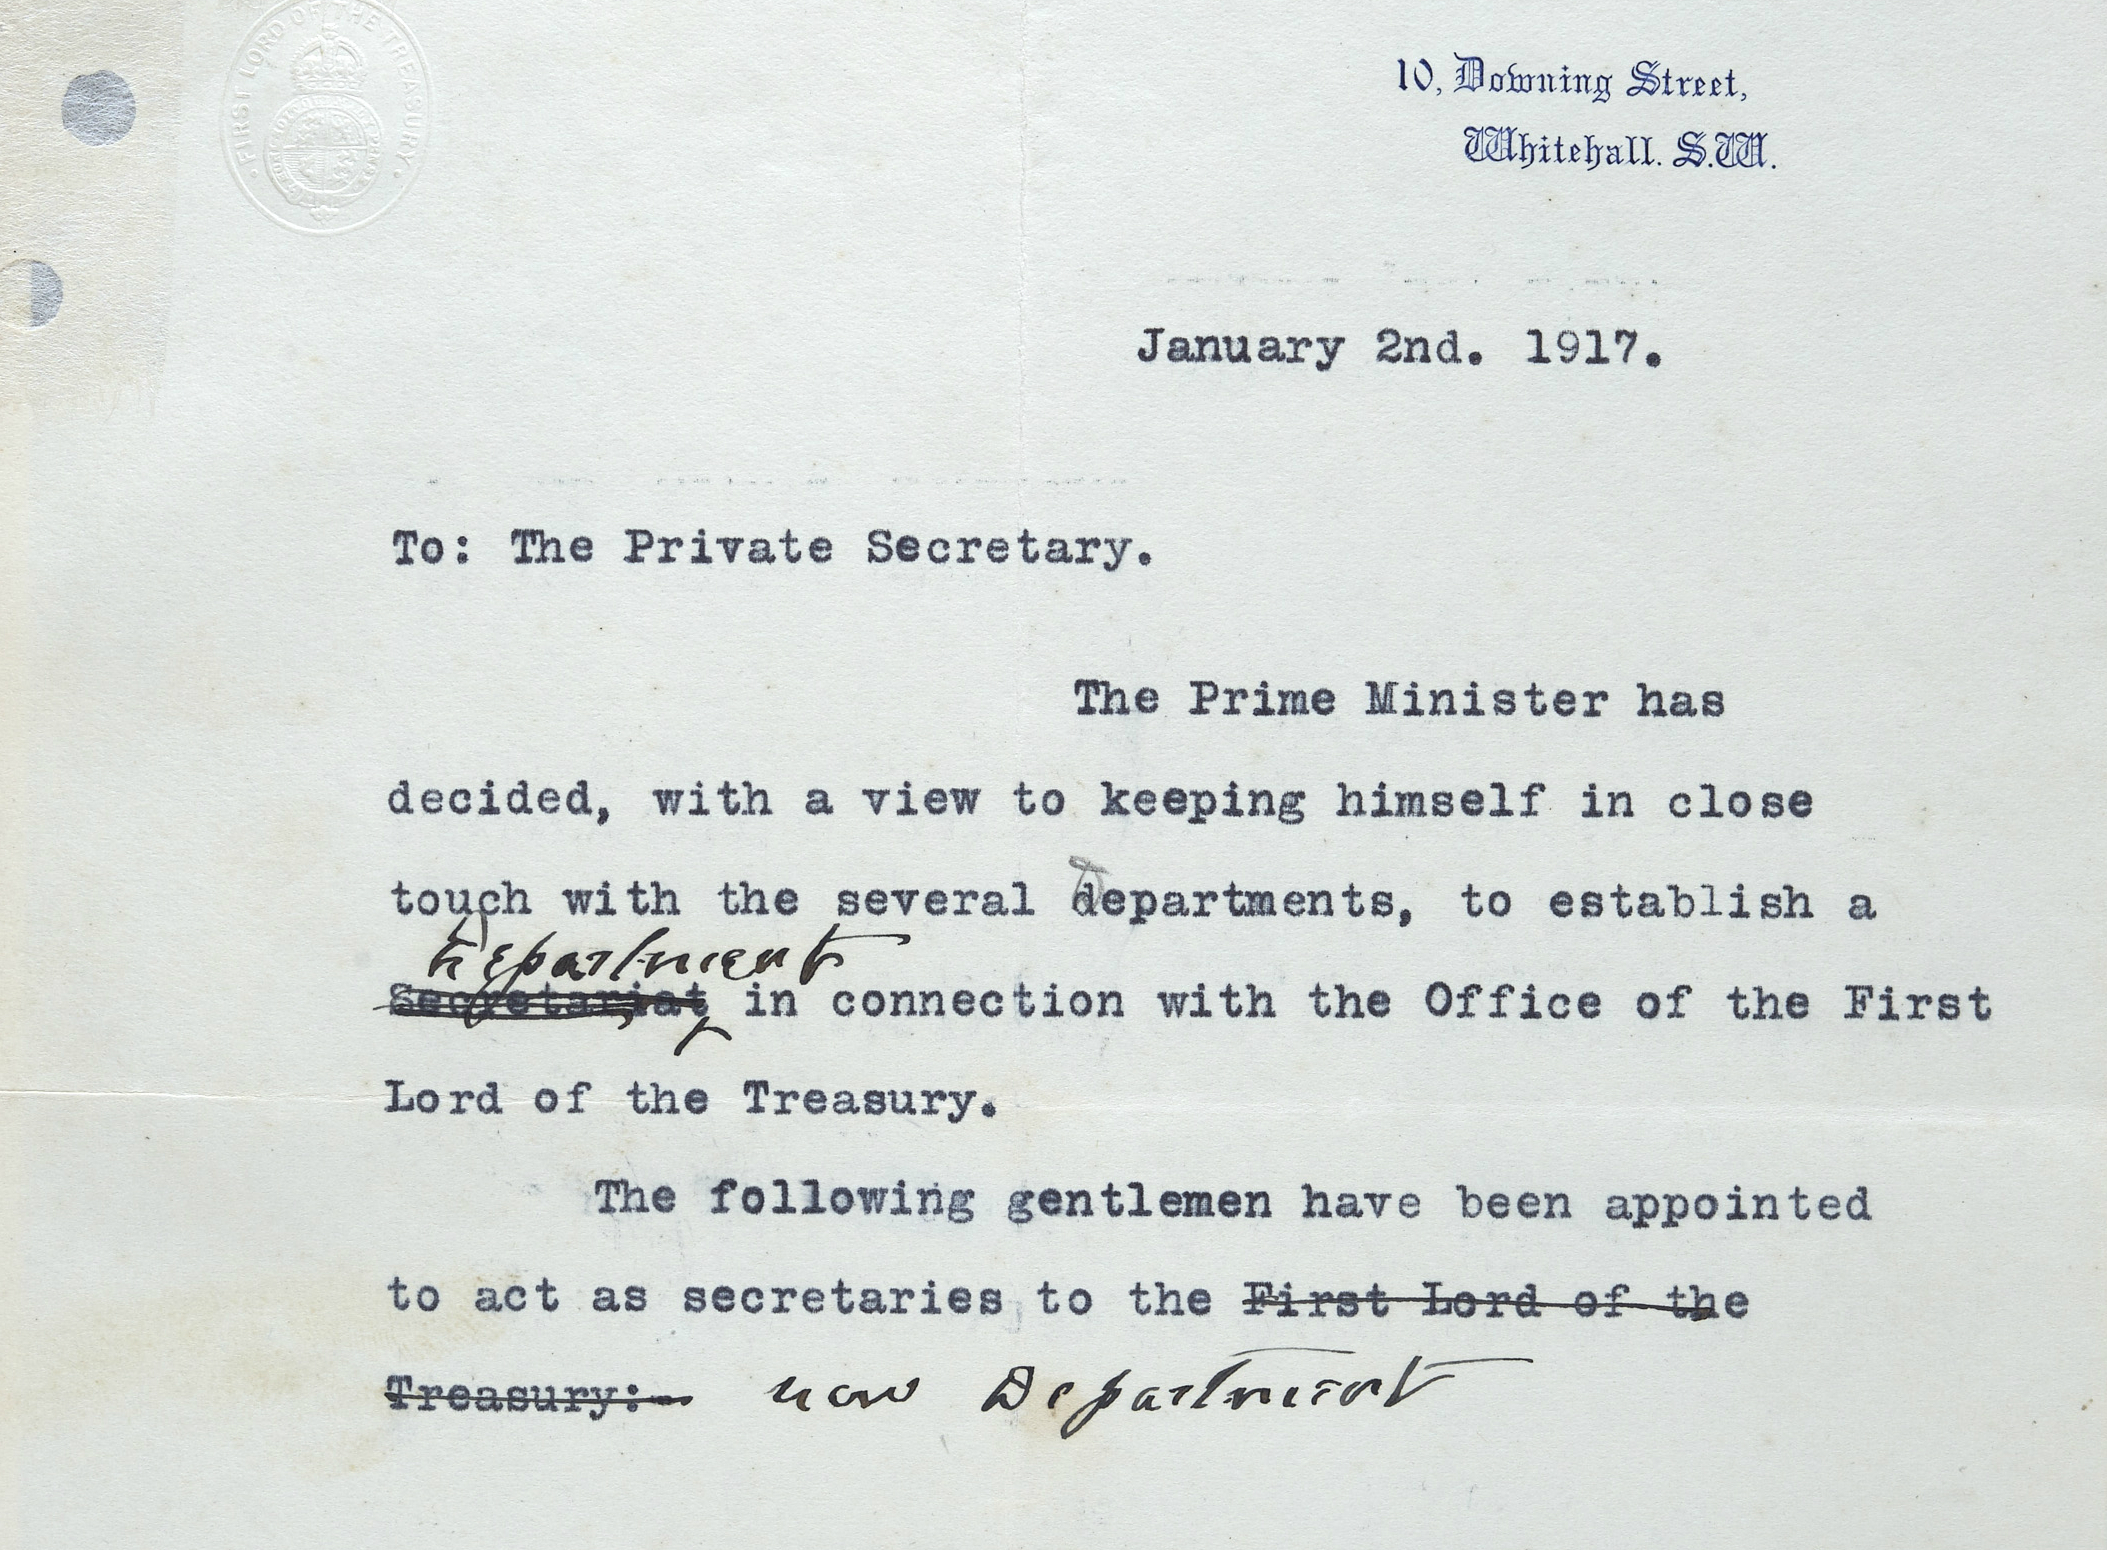 The draft note from 2 January 1917